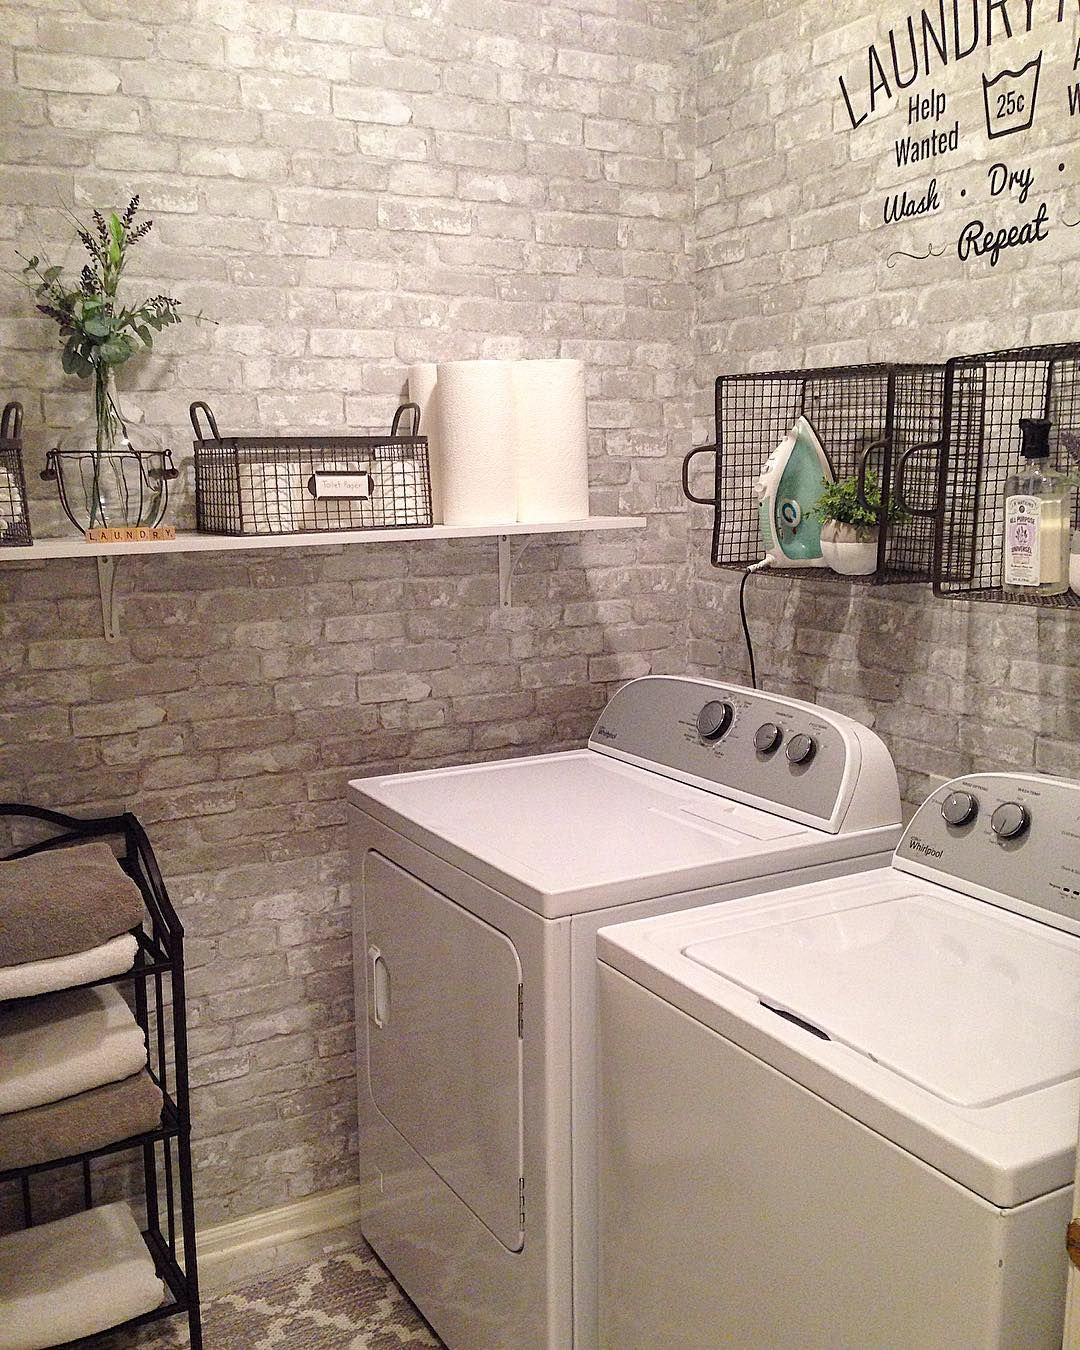 Laundry Room Wallpaper 15 Basement Reconstruction And Remodeling Ideas Budget Friendly